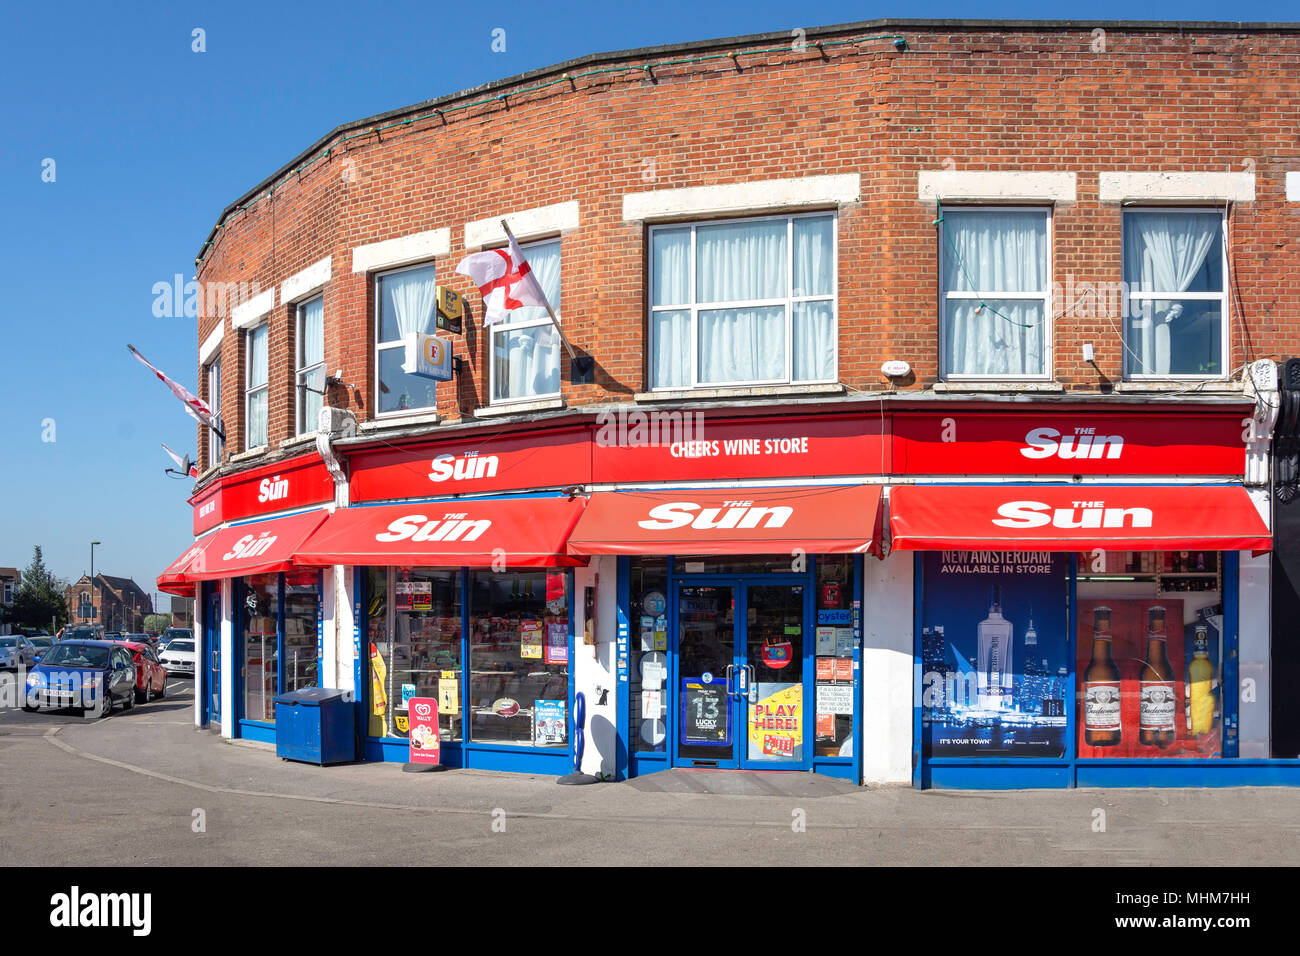 Cheers Wine Store & Newsagents, Station Approach, Ashford, Surrey, England, United Kingdom - Stock Image